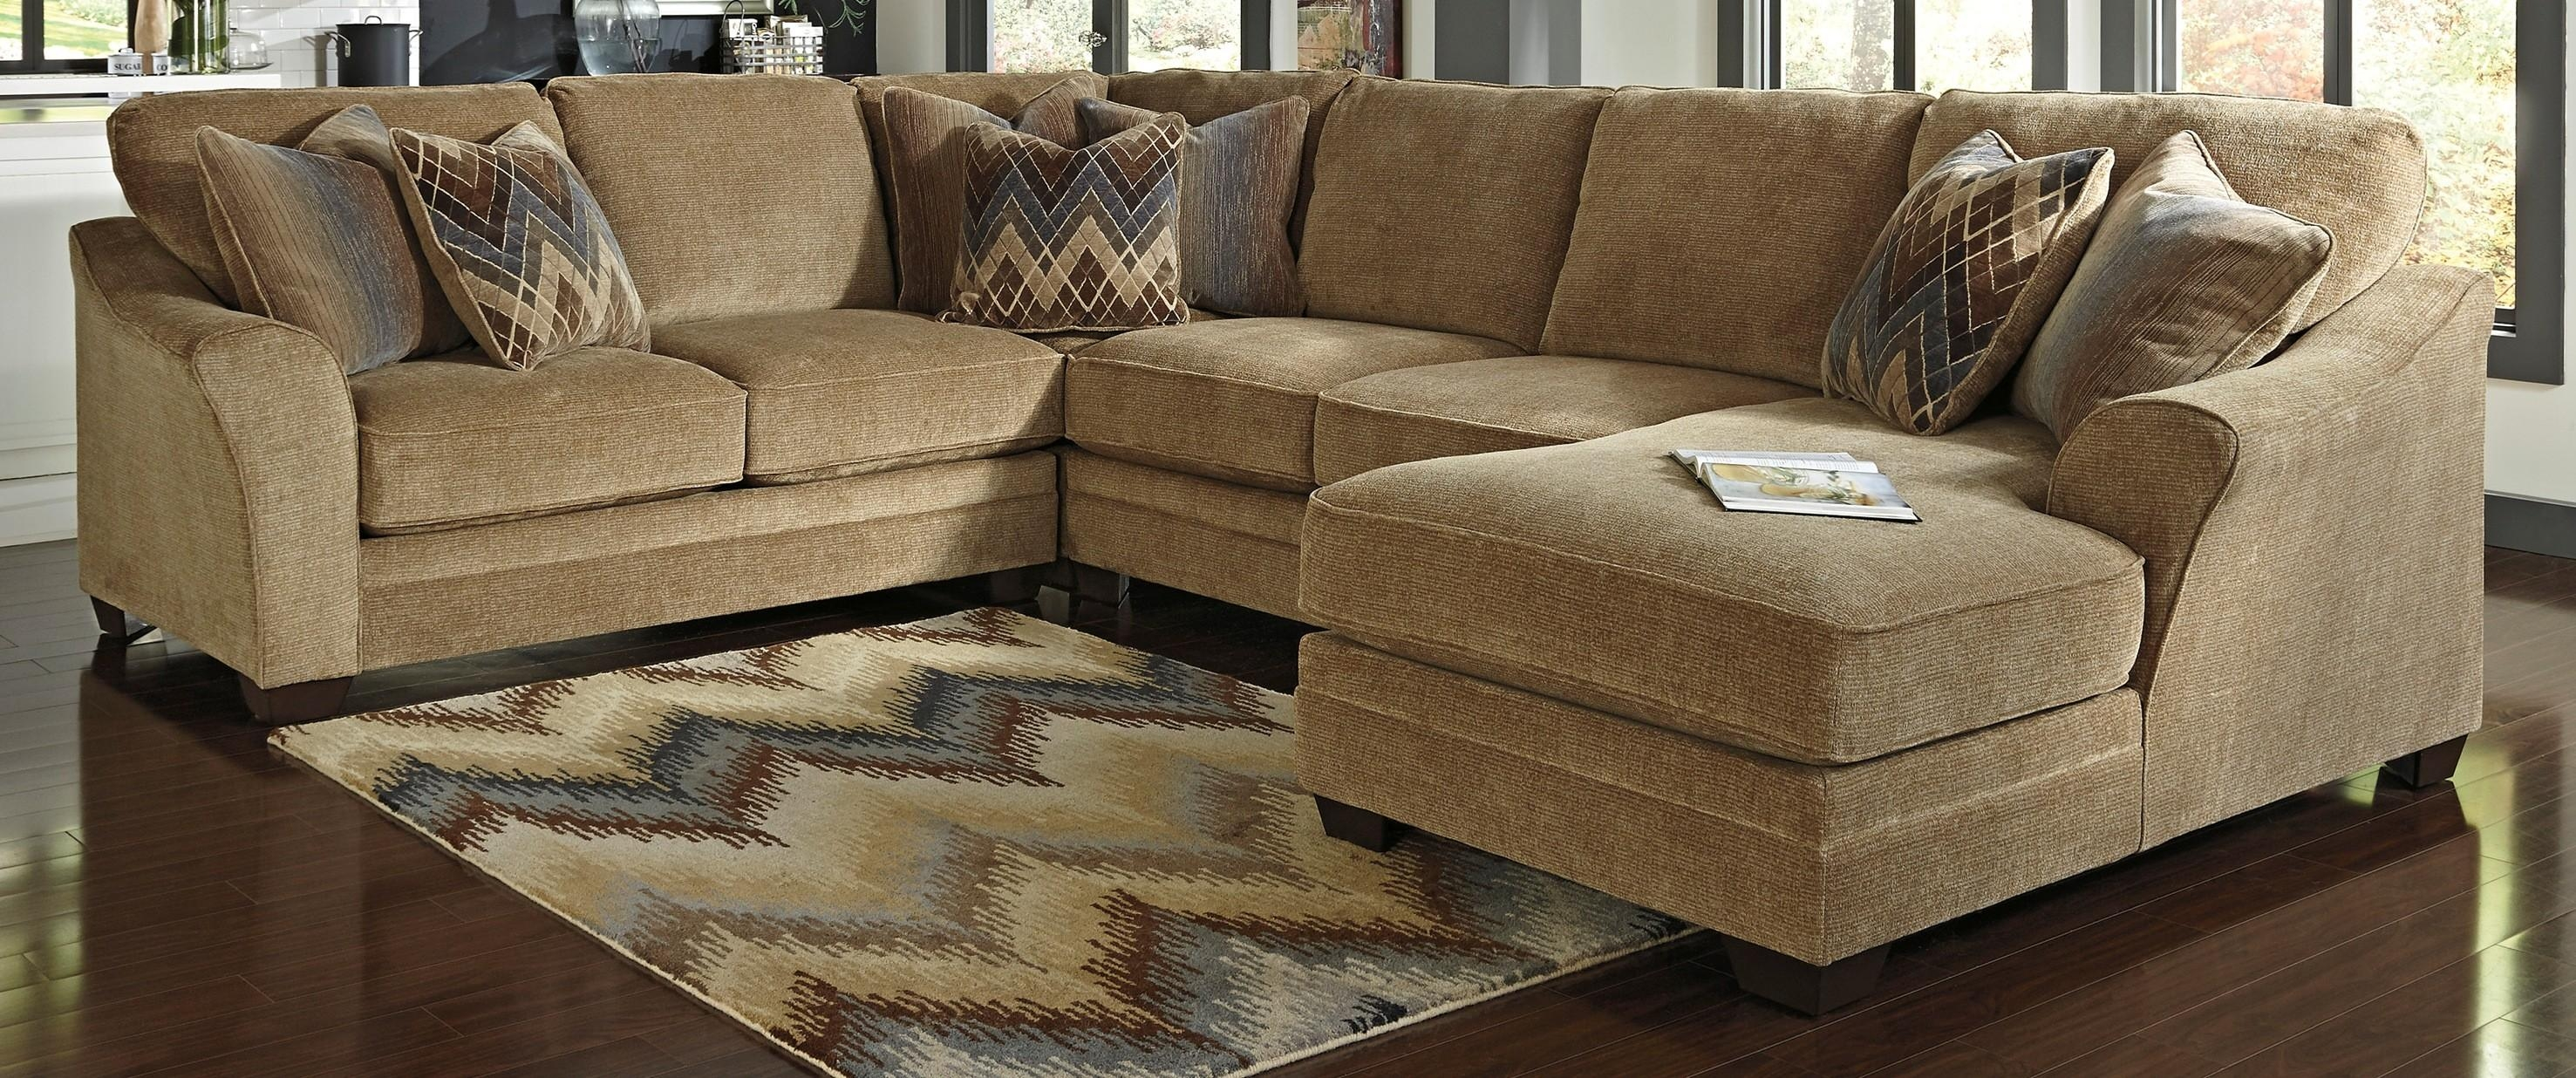 15 s Ashley Furniture Grenada Sectional